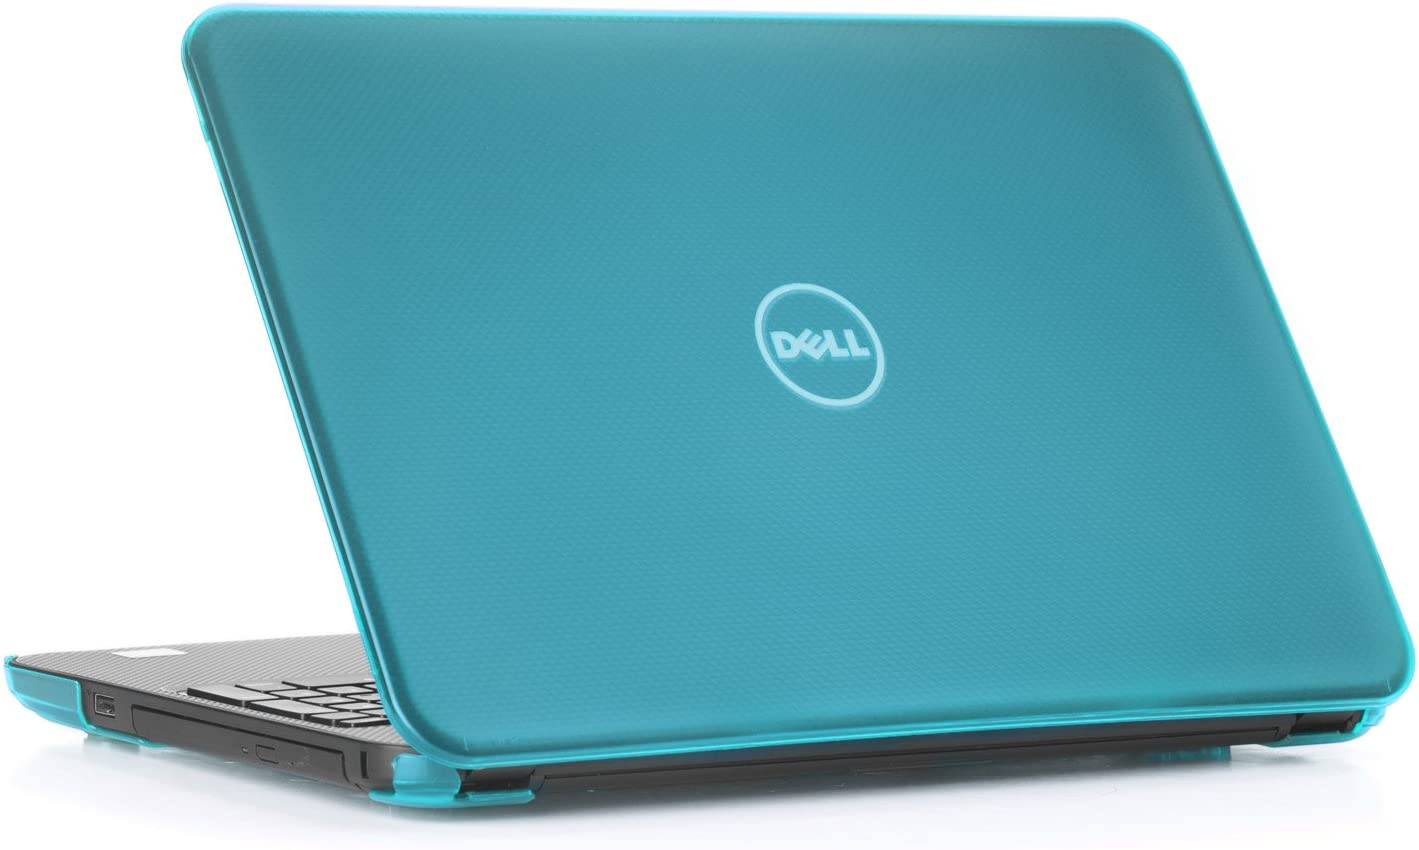 "mCover Hard Shell Case for 15.6"" Dell Inspiron 15 5565/5567 Laptop (NOT Compatible with Other Dell Inspiron 5000 Series Models) (Aqua)"